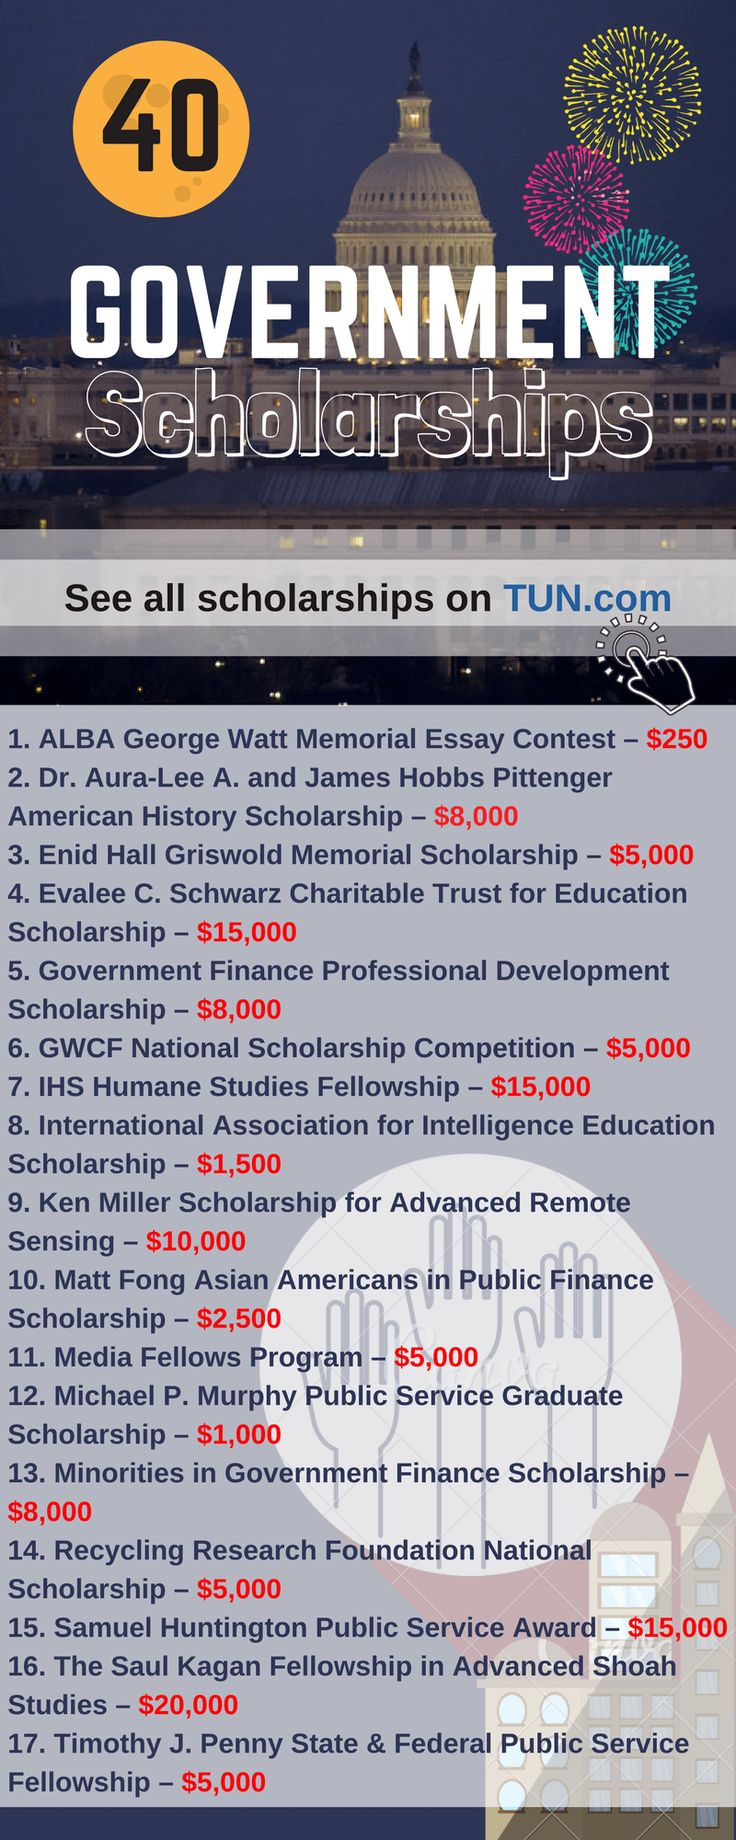 Here is a selection of Government Scholarships